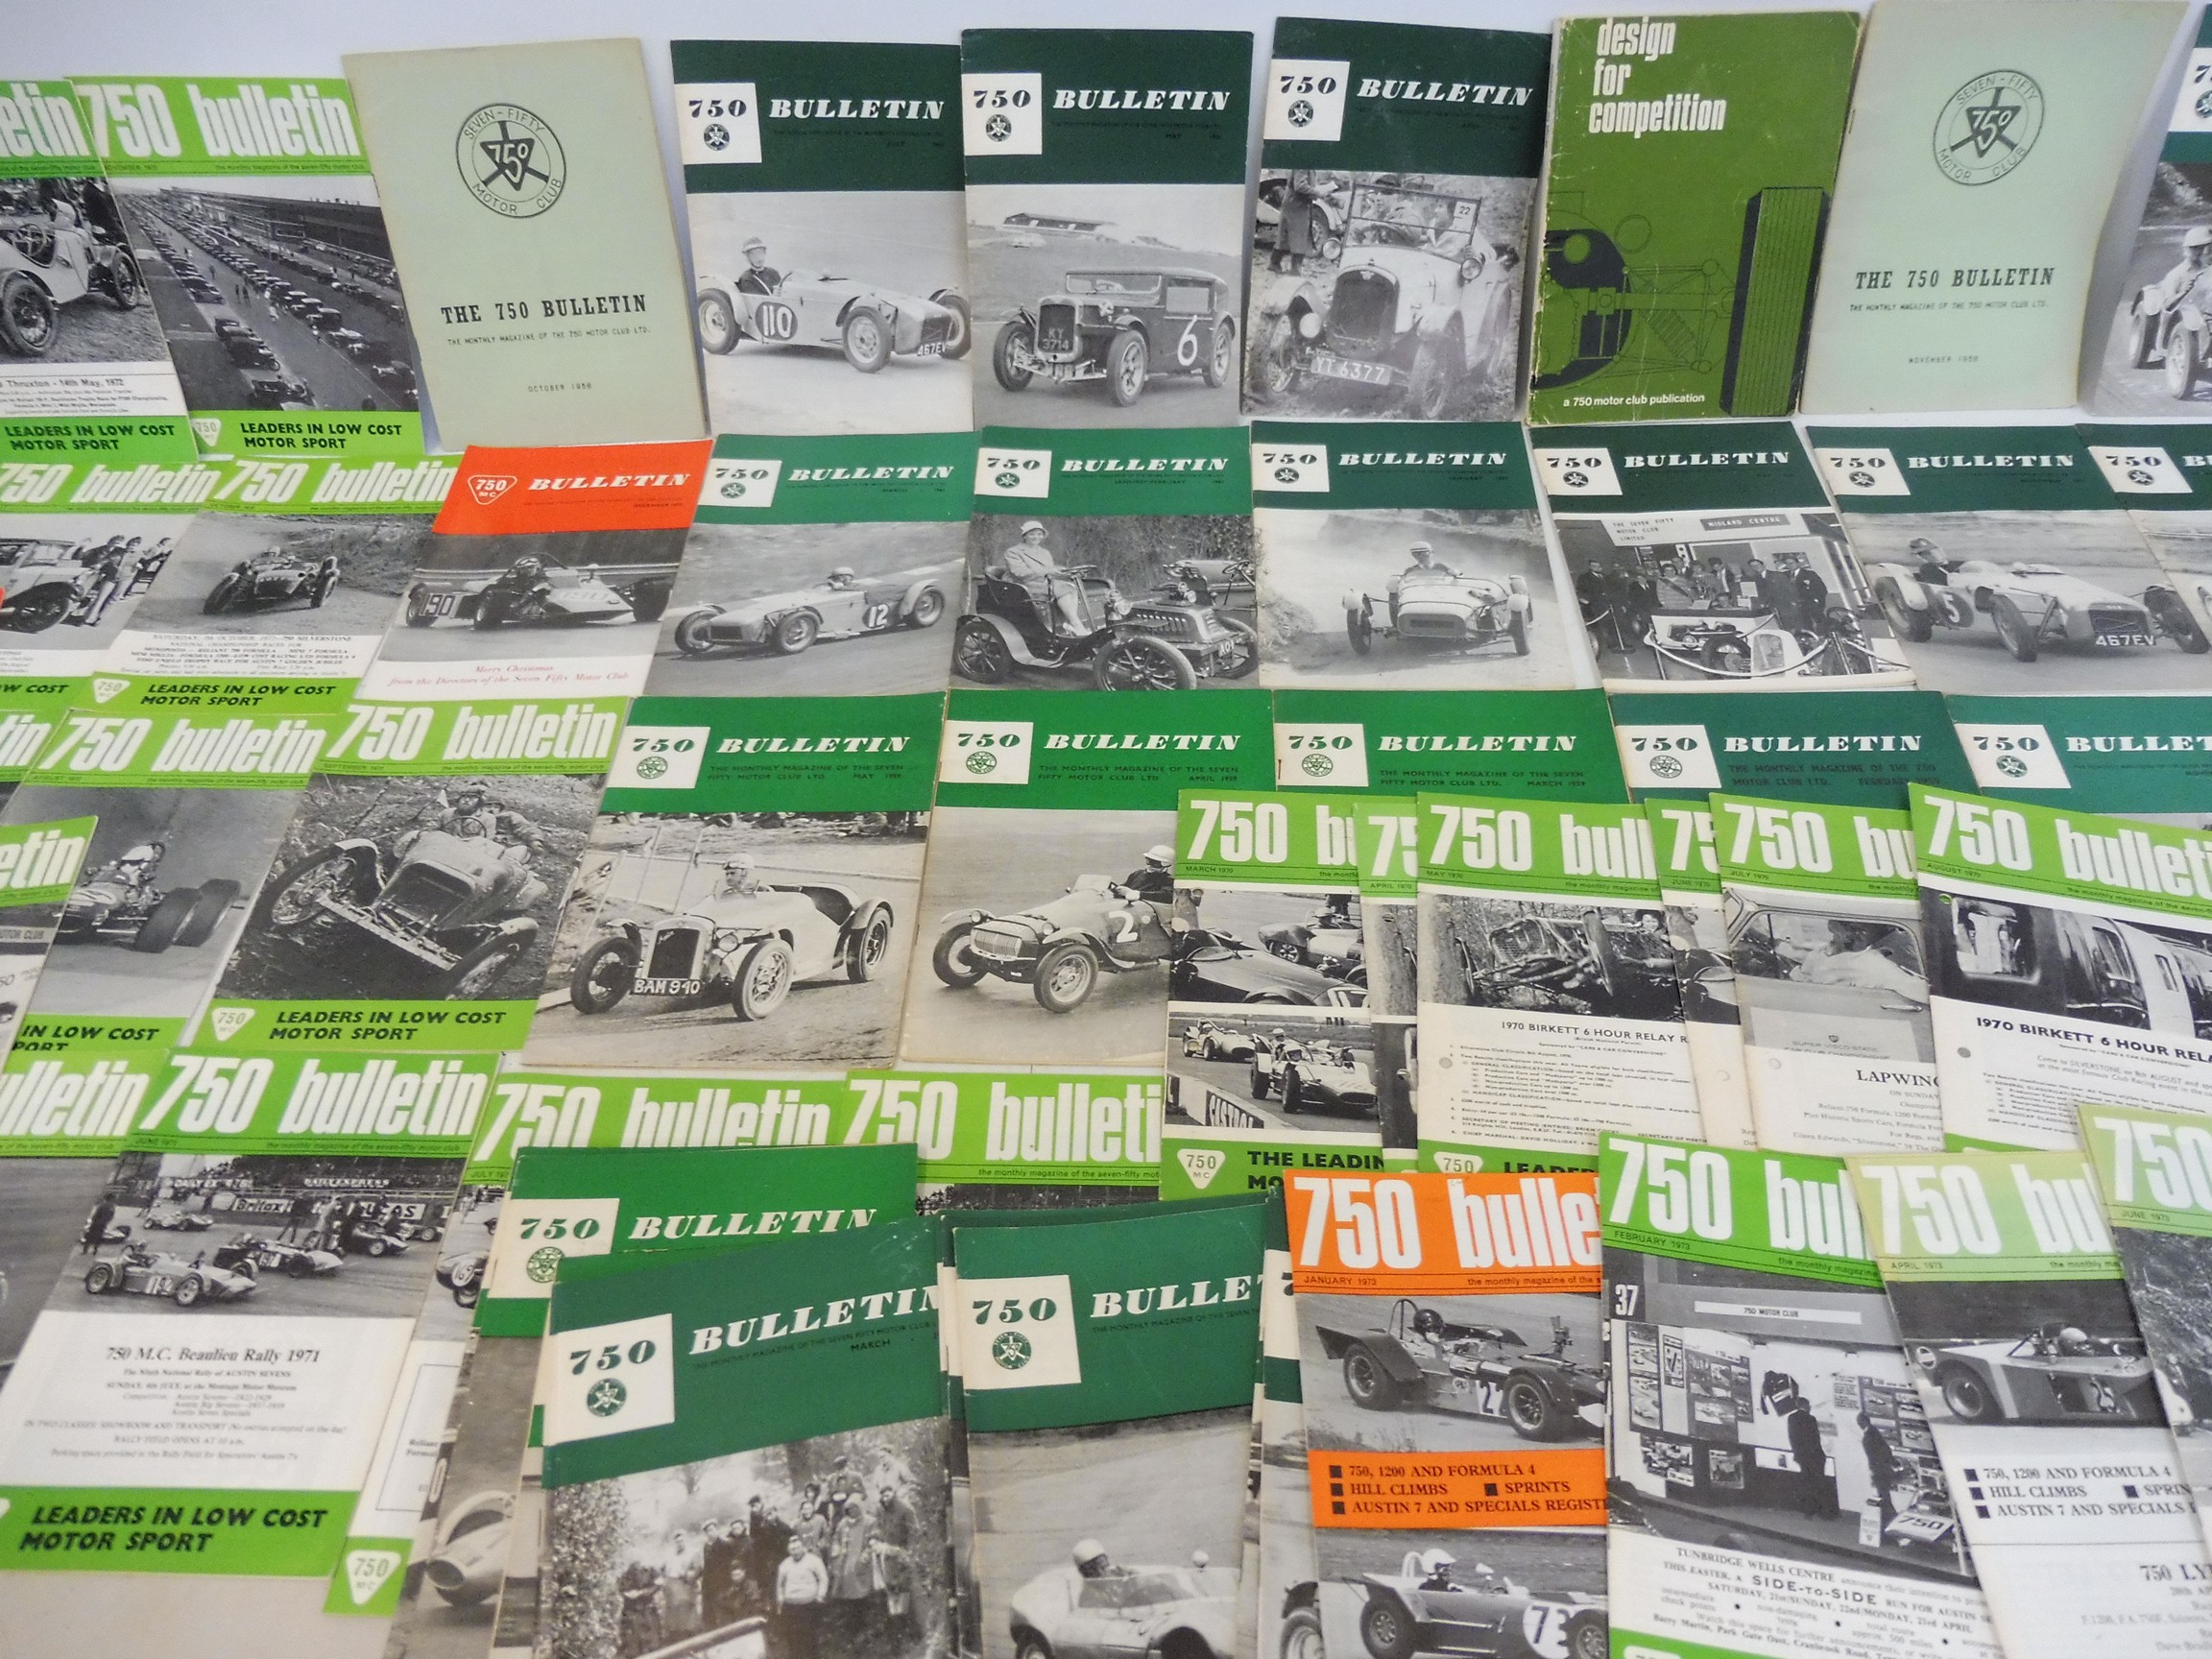 A small collection of 750 Club bulletins and related ephemera, various issues from 1958 including